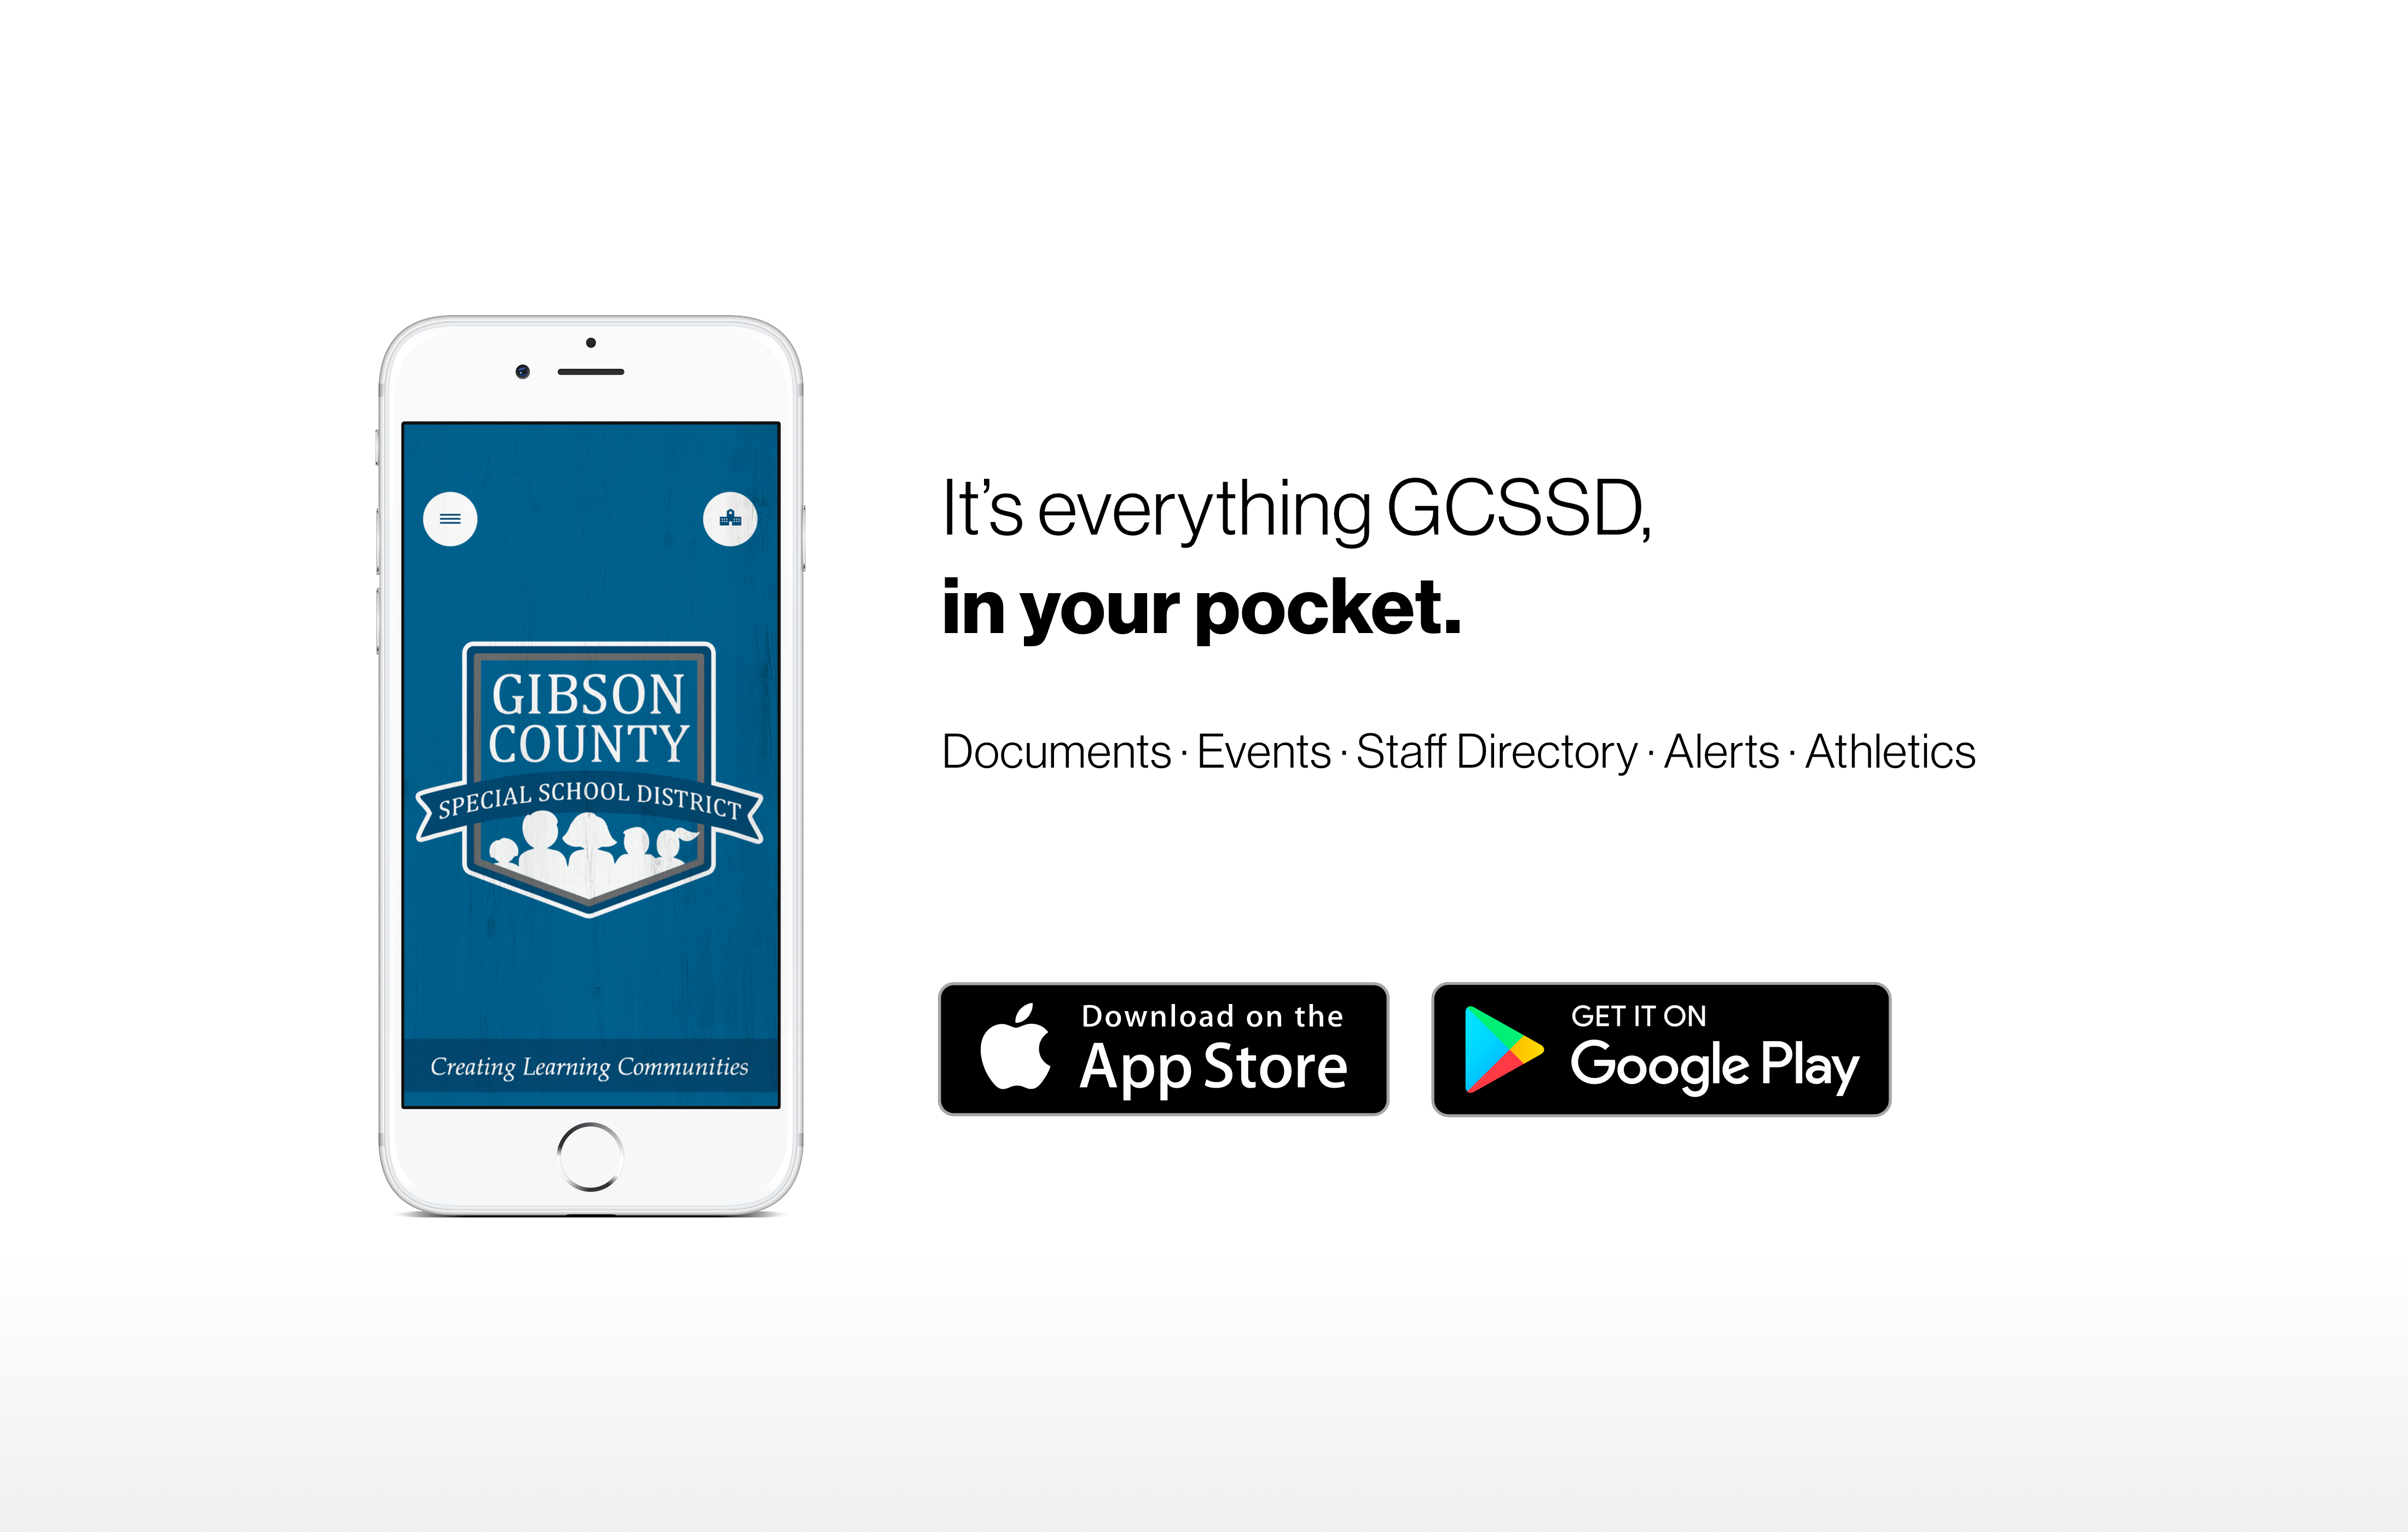 It's everything GCSSD, in your pocket!